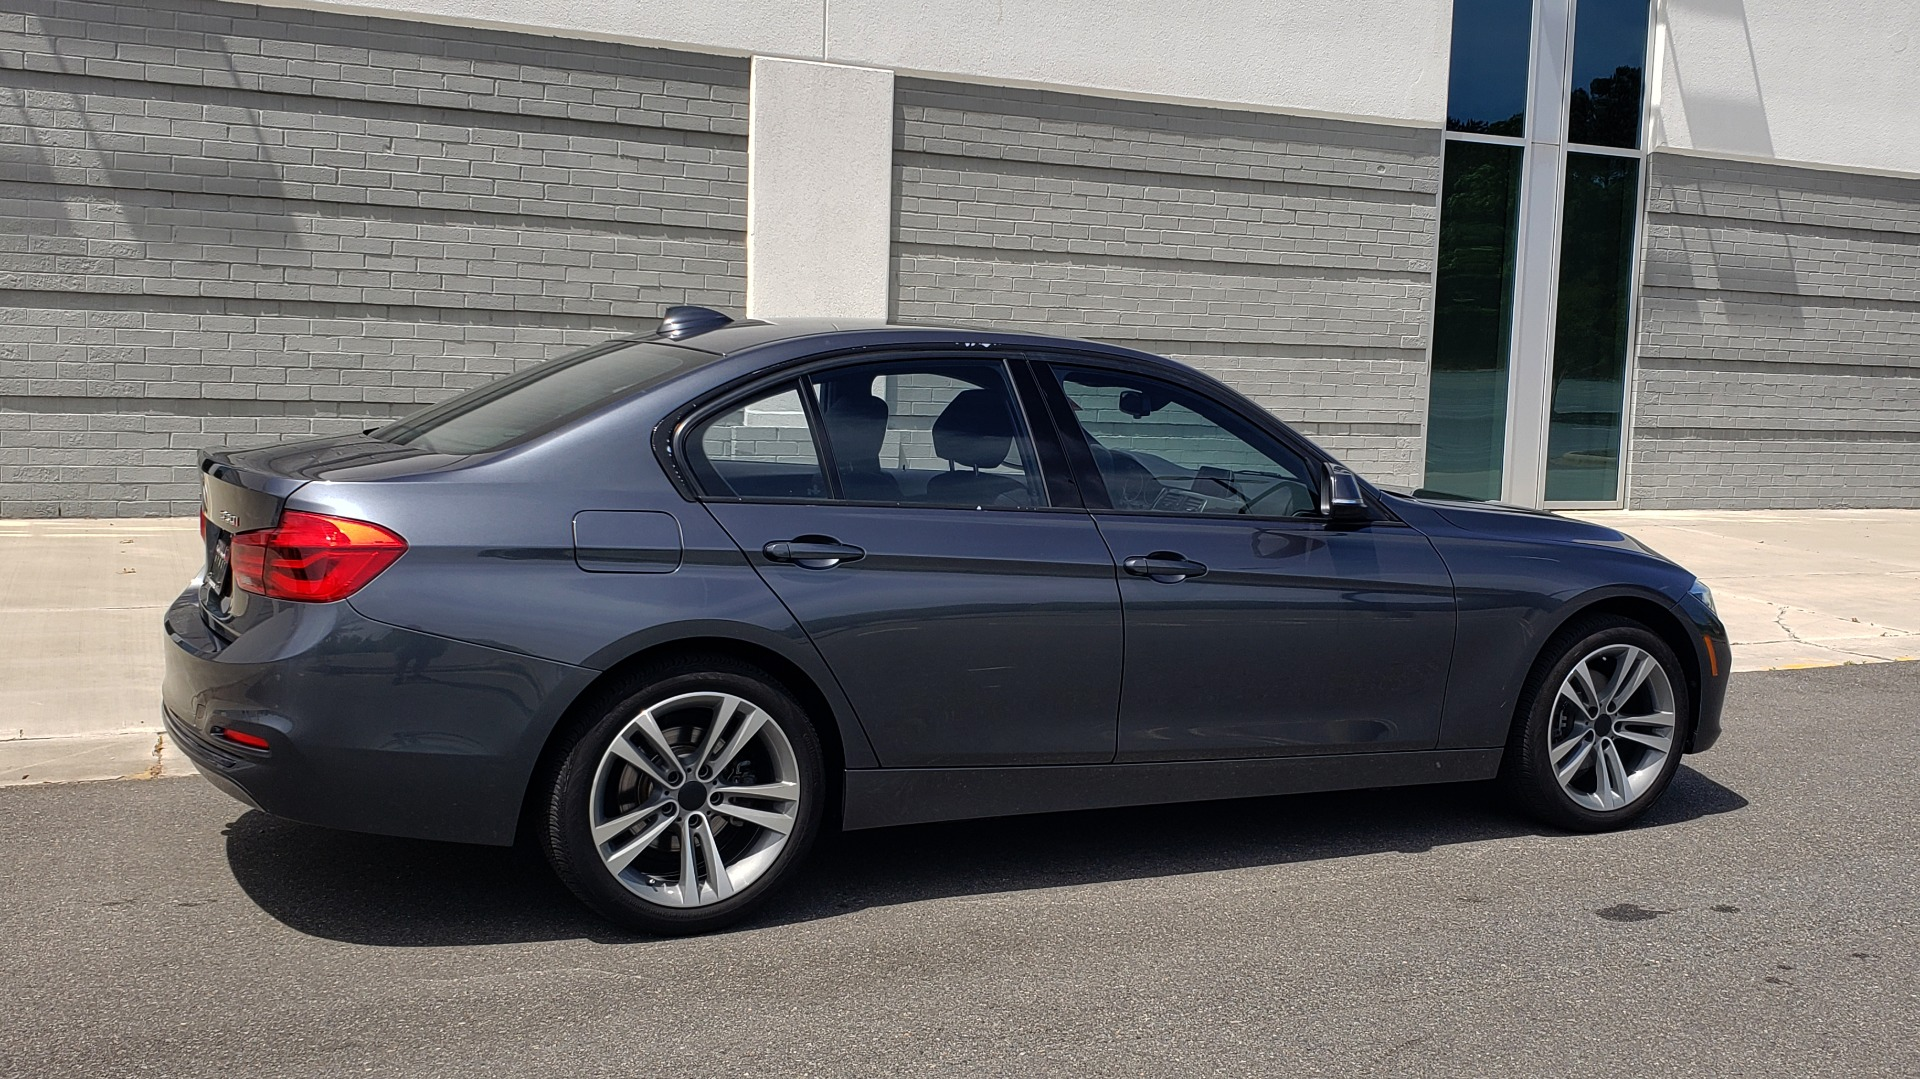 Used 2018 BMW 3 SERIES 330I XDRIVE / CONV PKG / SUNROOF / SPORT STS / HTD STS / REARVIEW for sale $28,495 at Formula Imports in Charlotte NC 28227 7